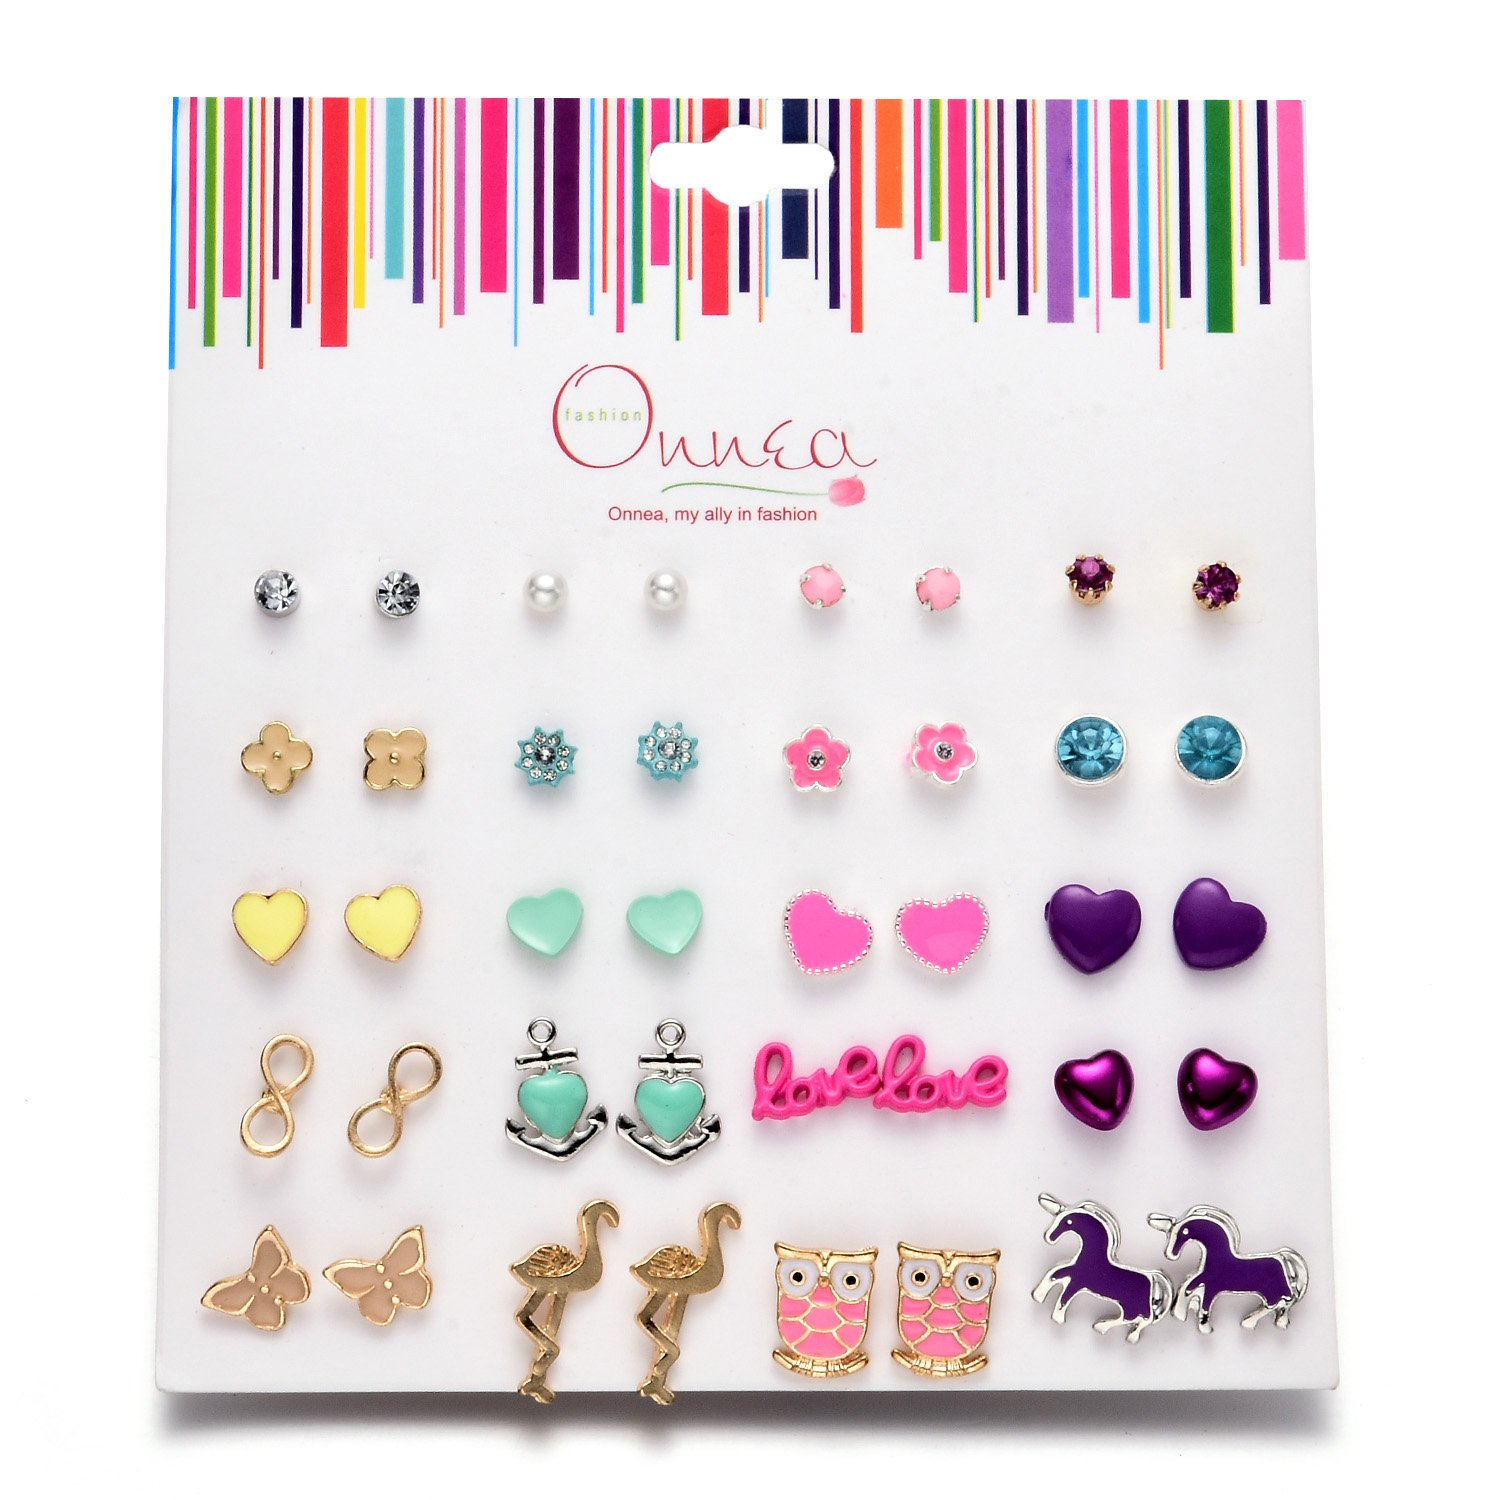 Onnea Multi Packs Animals Flowers Theme Earrings Set for Girls, Hypoallergenic Hypoallergenic (24-Pack) Vogue Fashion Accessories Co. Ltd E-0461-0462